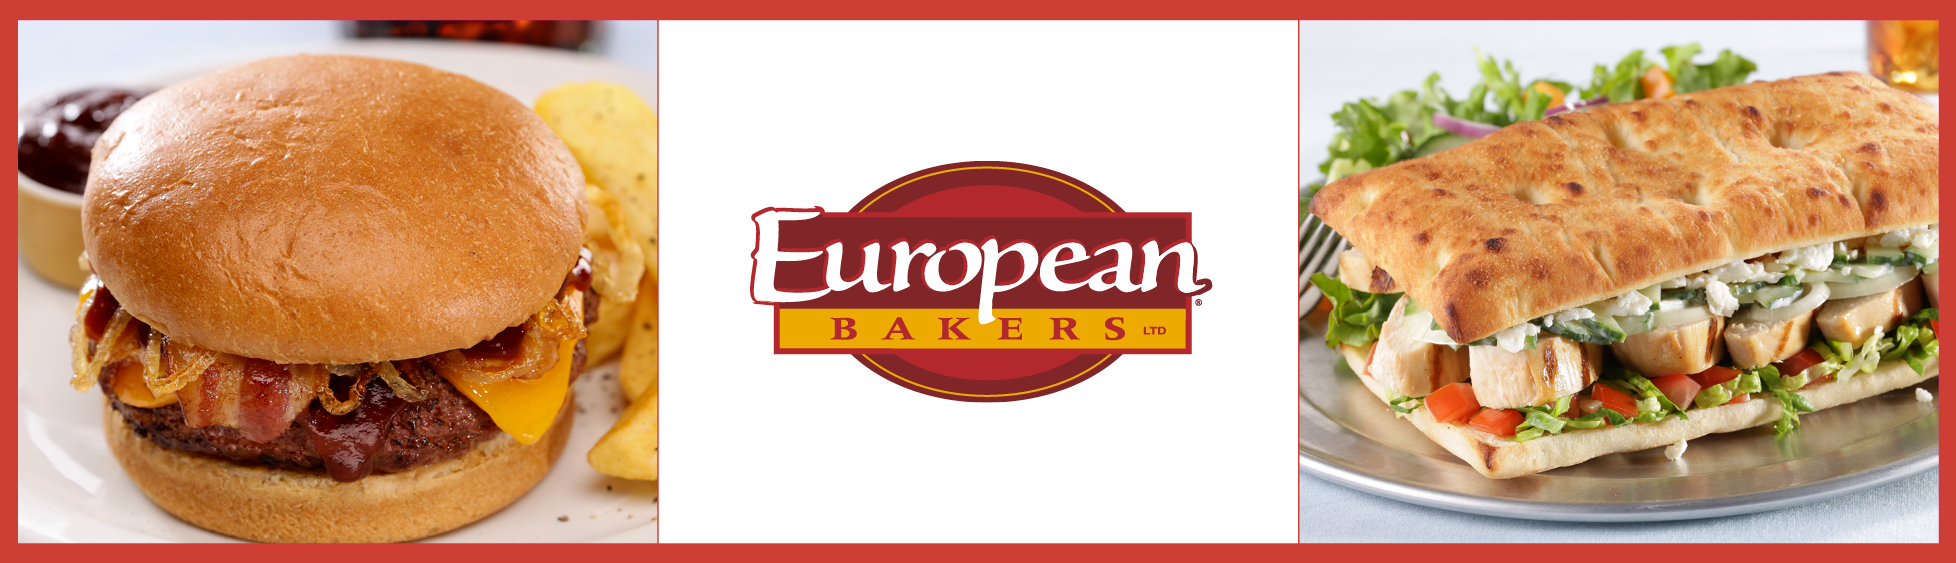 European Bakers | Flowers Bakeries Foodservice